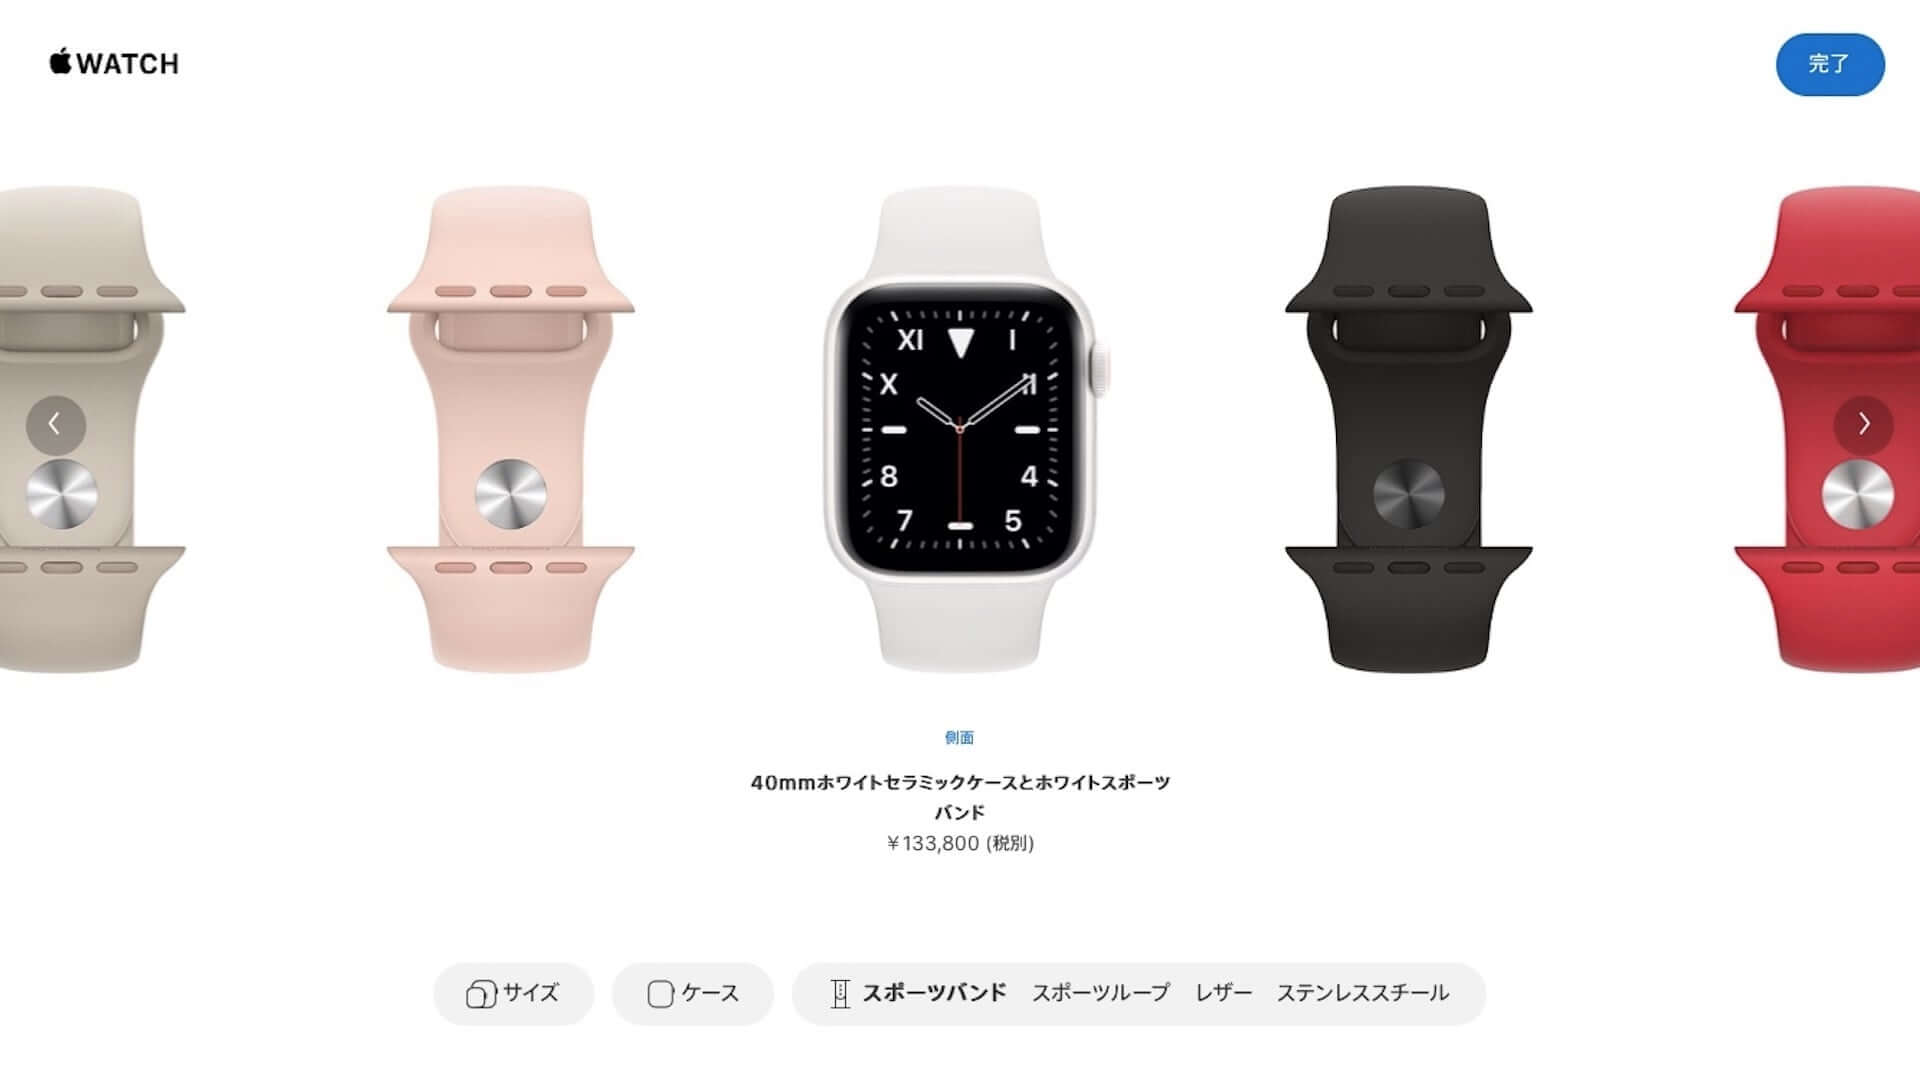 あなた好みのApple Watchを探そう!Apple Watch Studioが開設 tech190911_applewatch_studio_5-1920x1069